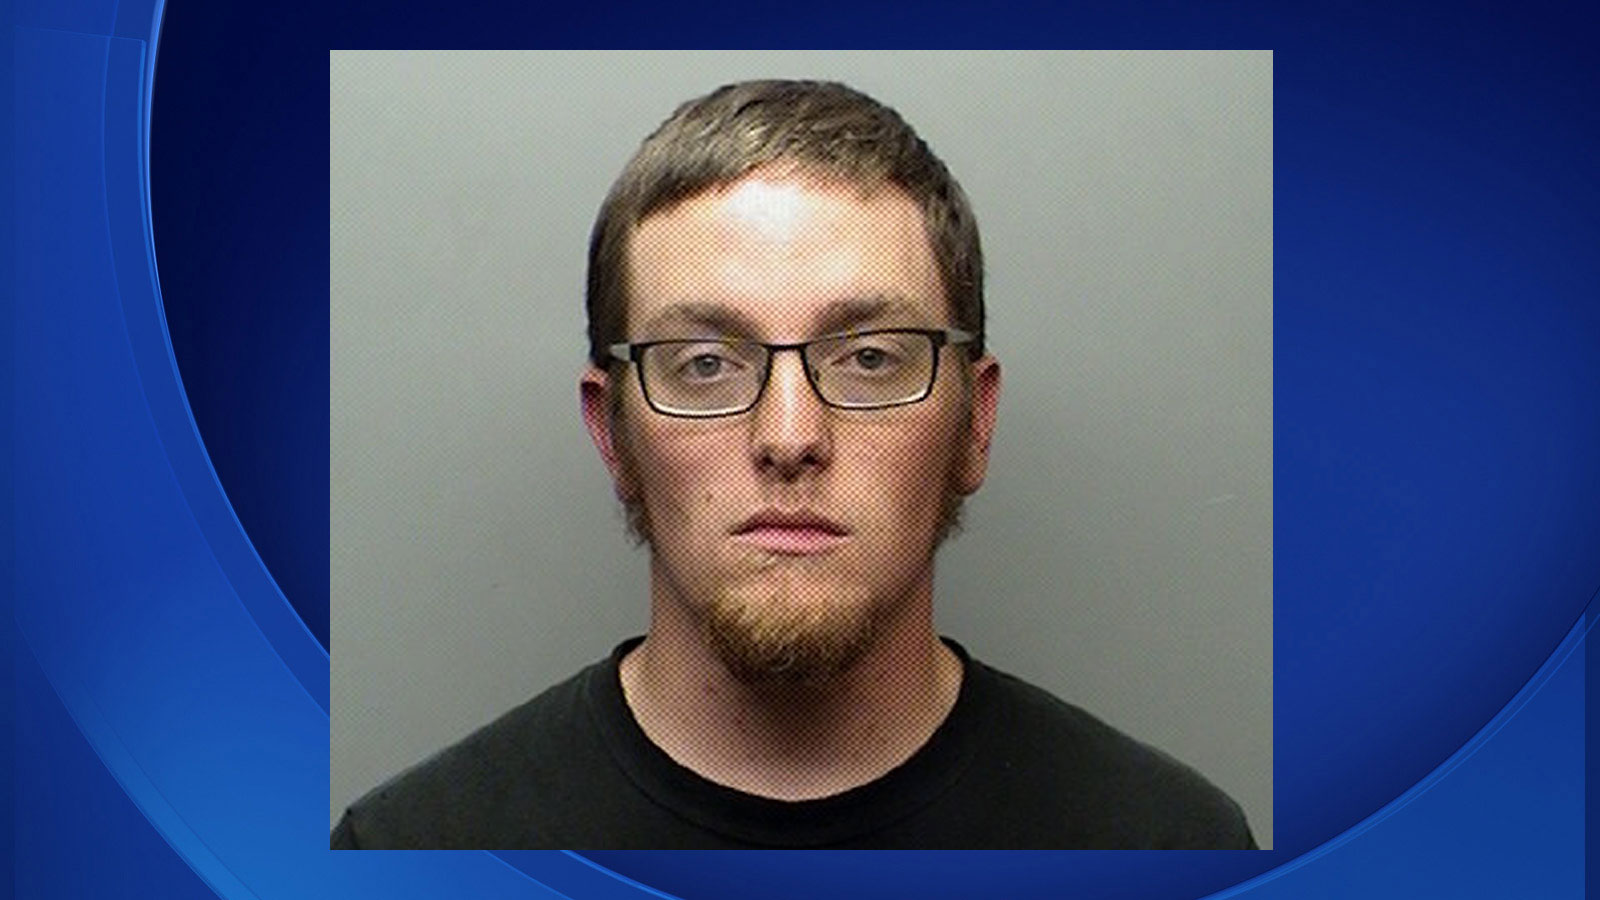 Logan Michael Kindall (credit: Larimer County Sheriff's Office)